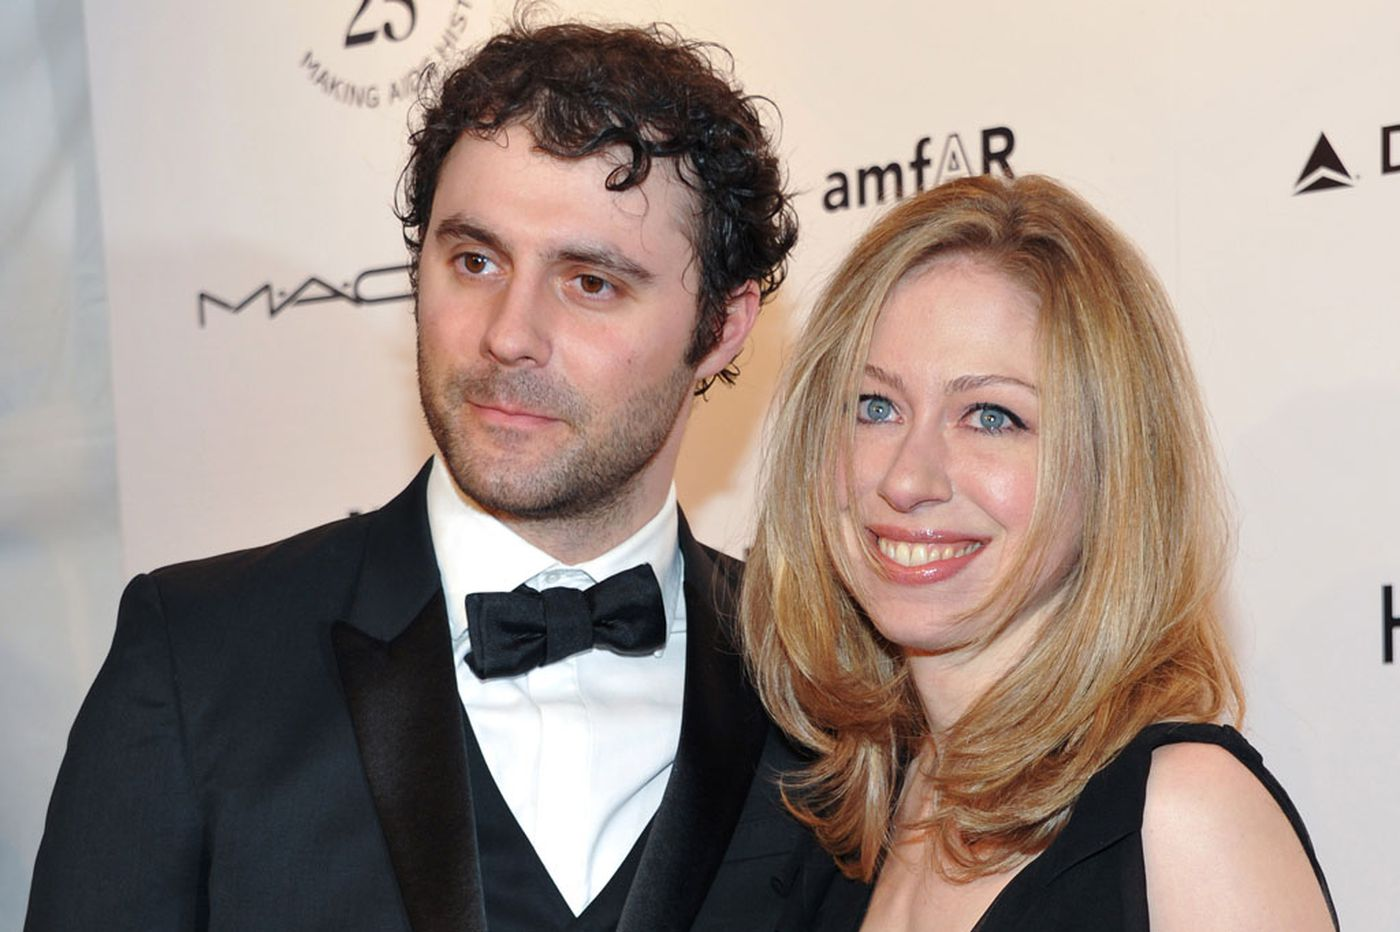 Mezvinsky: I did have sex with that woman. Chelsea Clinton's pregnant